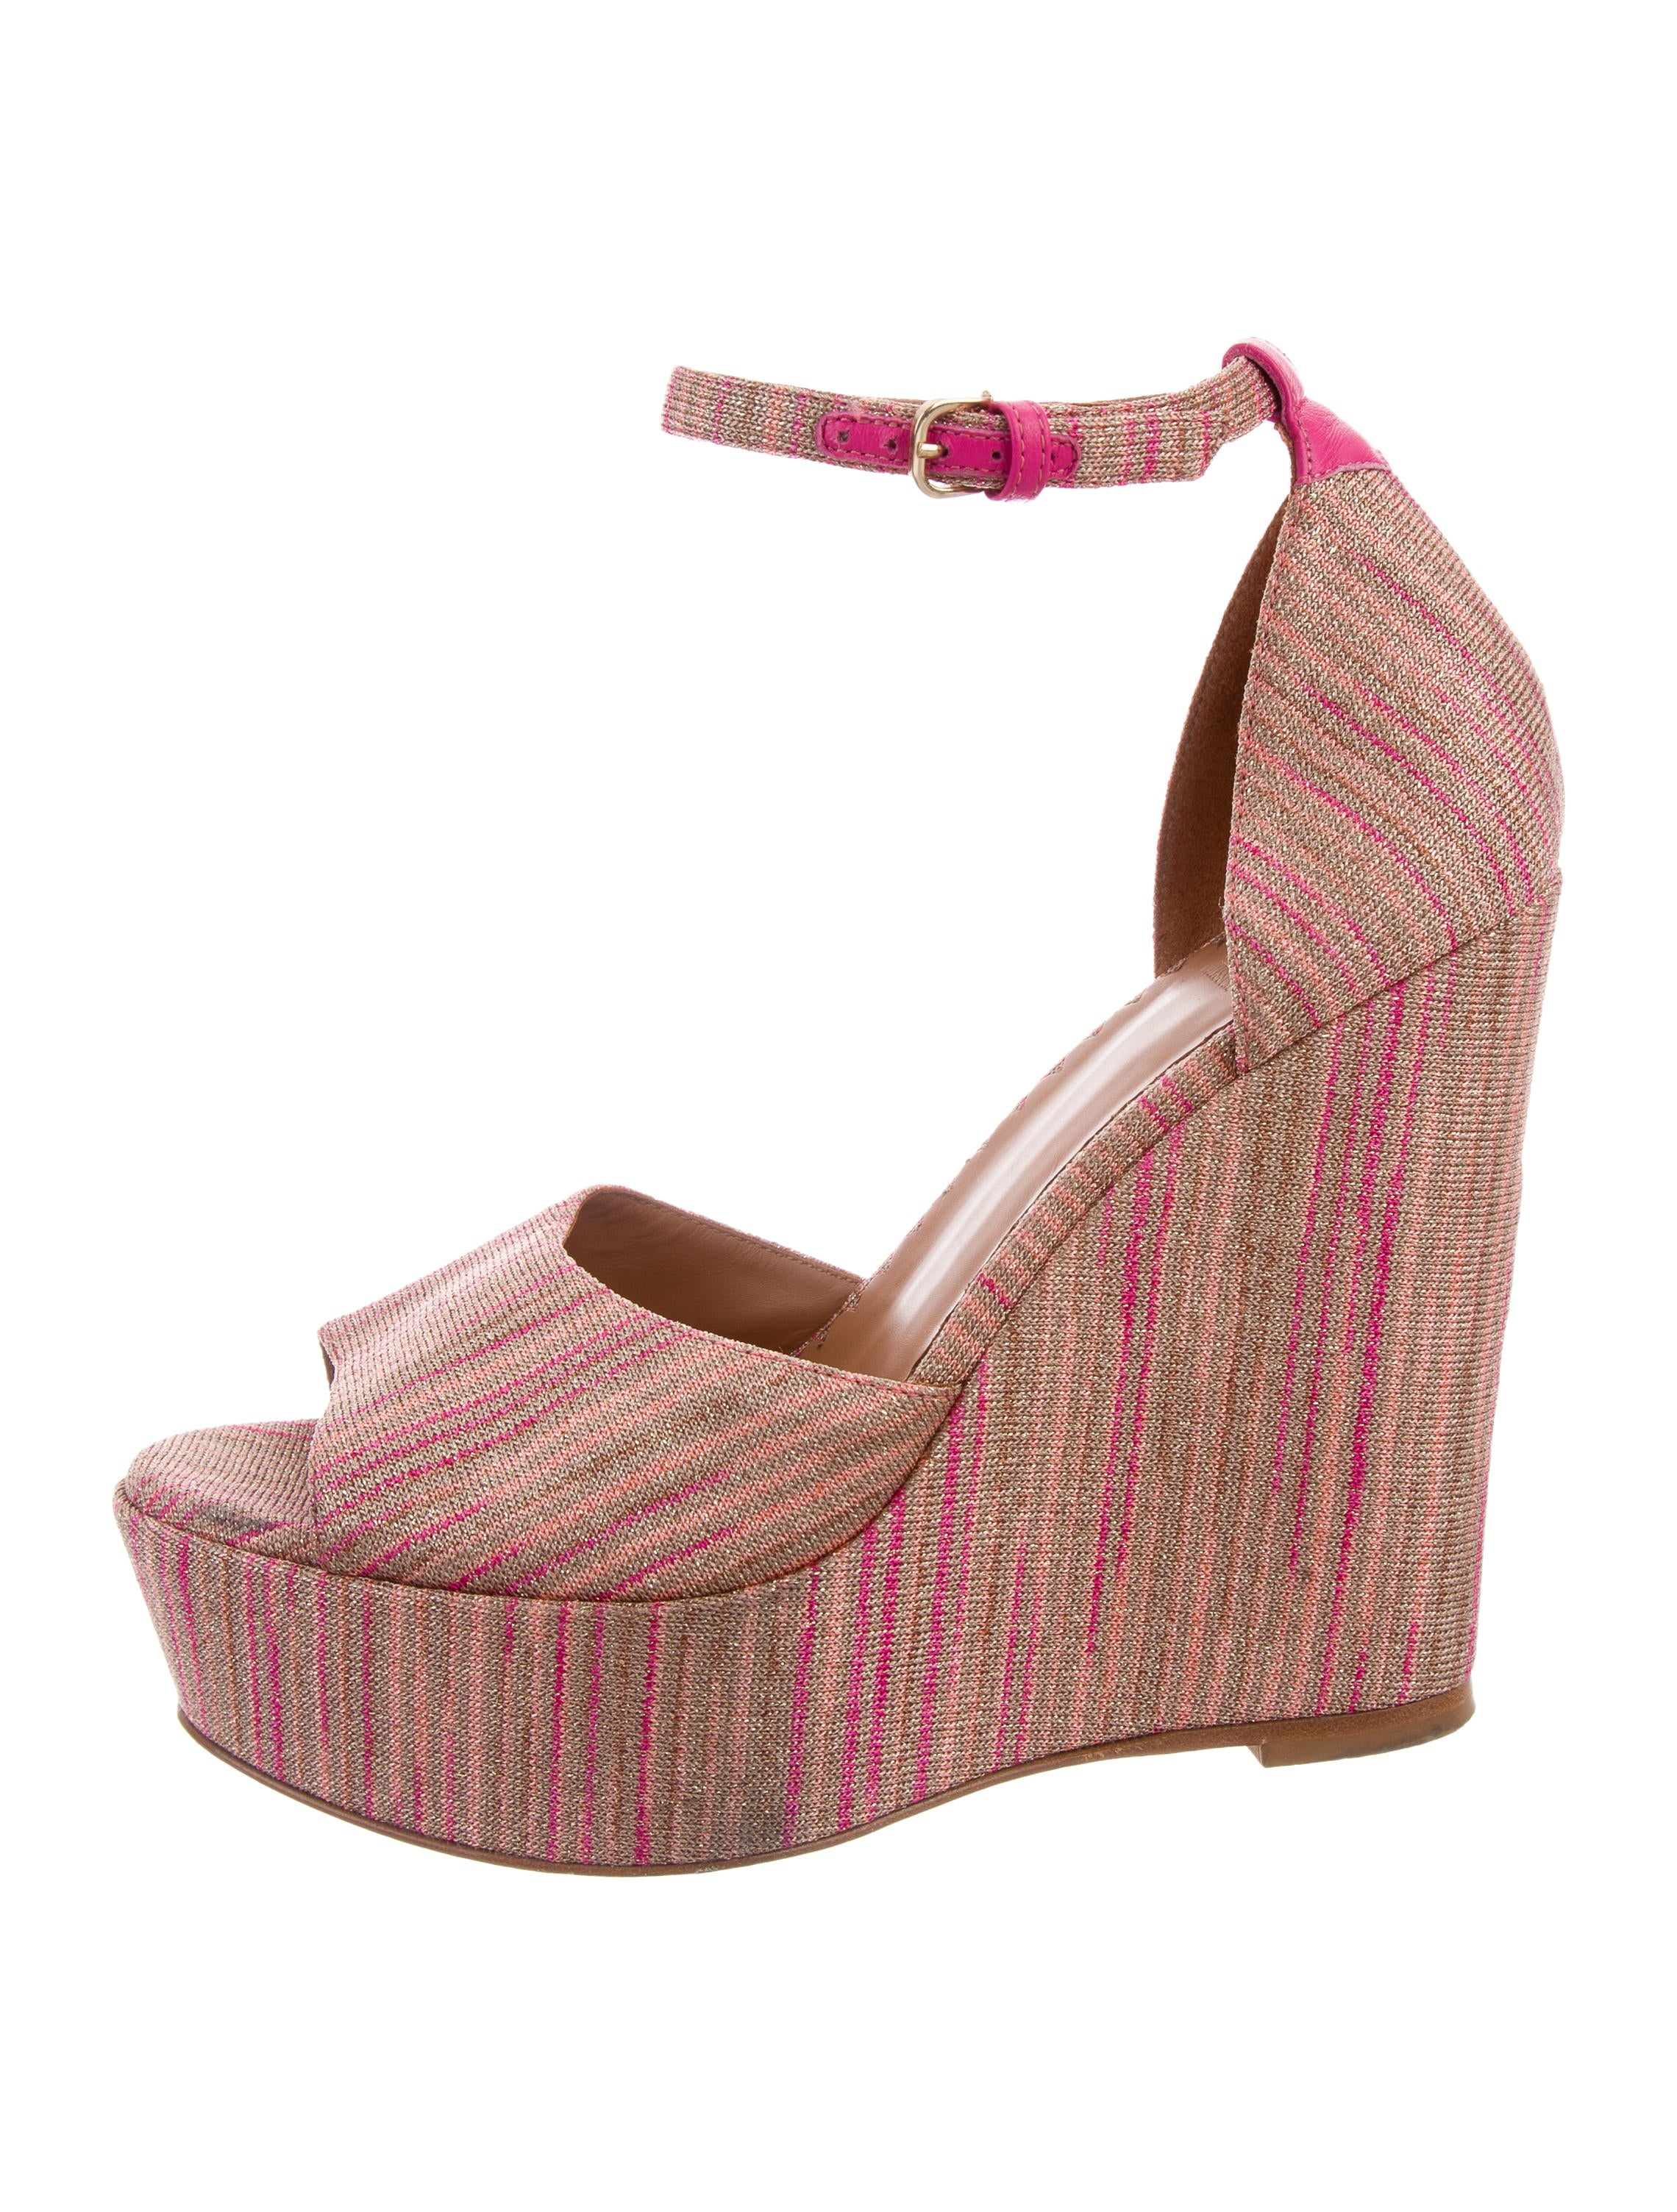 free shipping pay with paypal Missoni M Patterned Platform Wedges big sale online sale get authentic discount store EA1YiWQvq